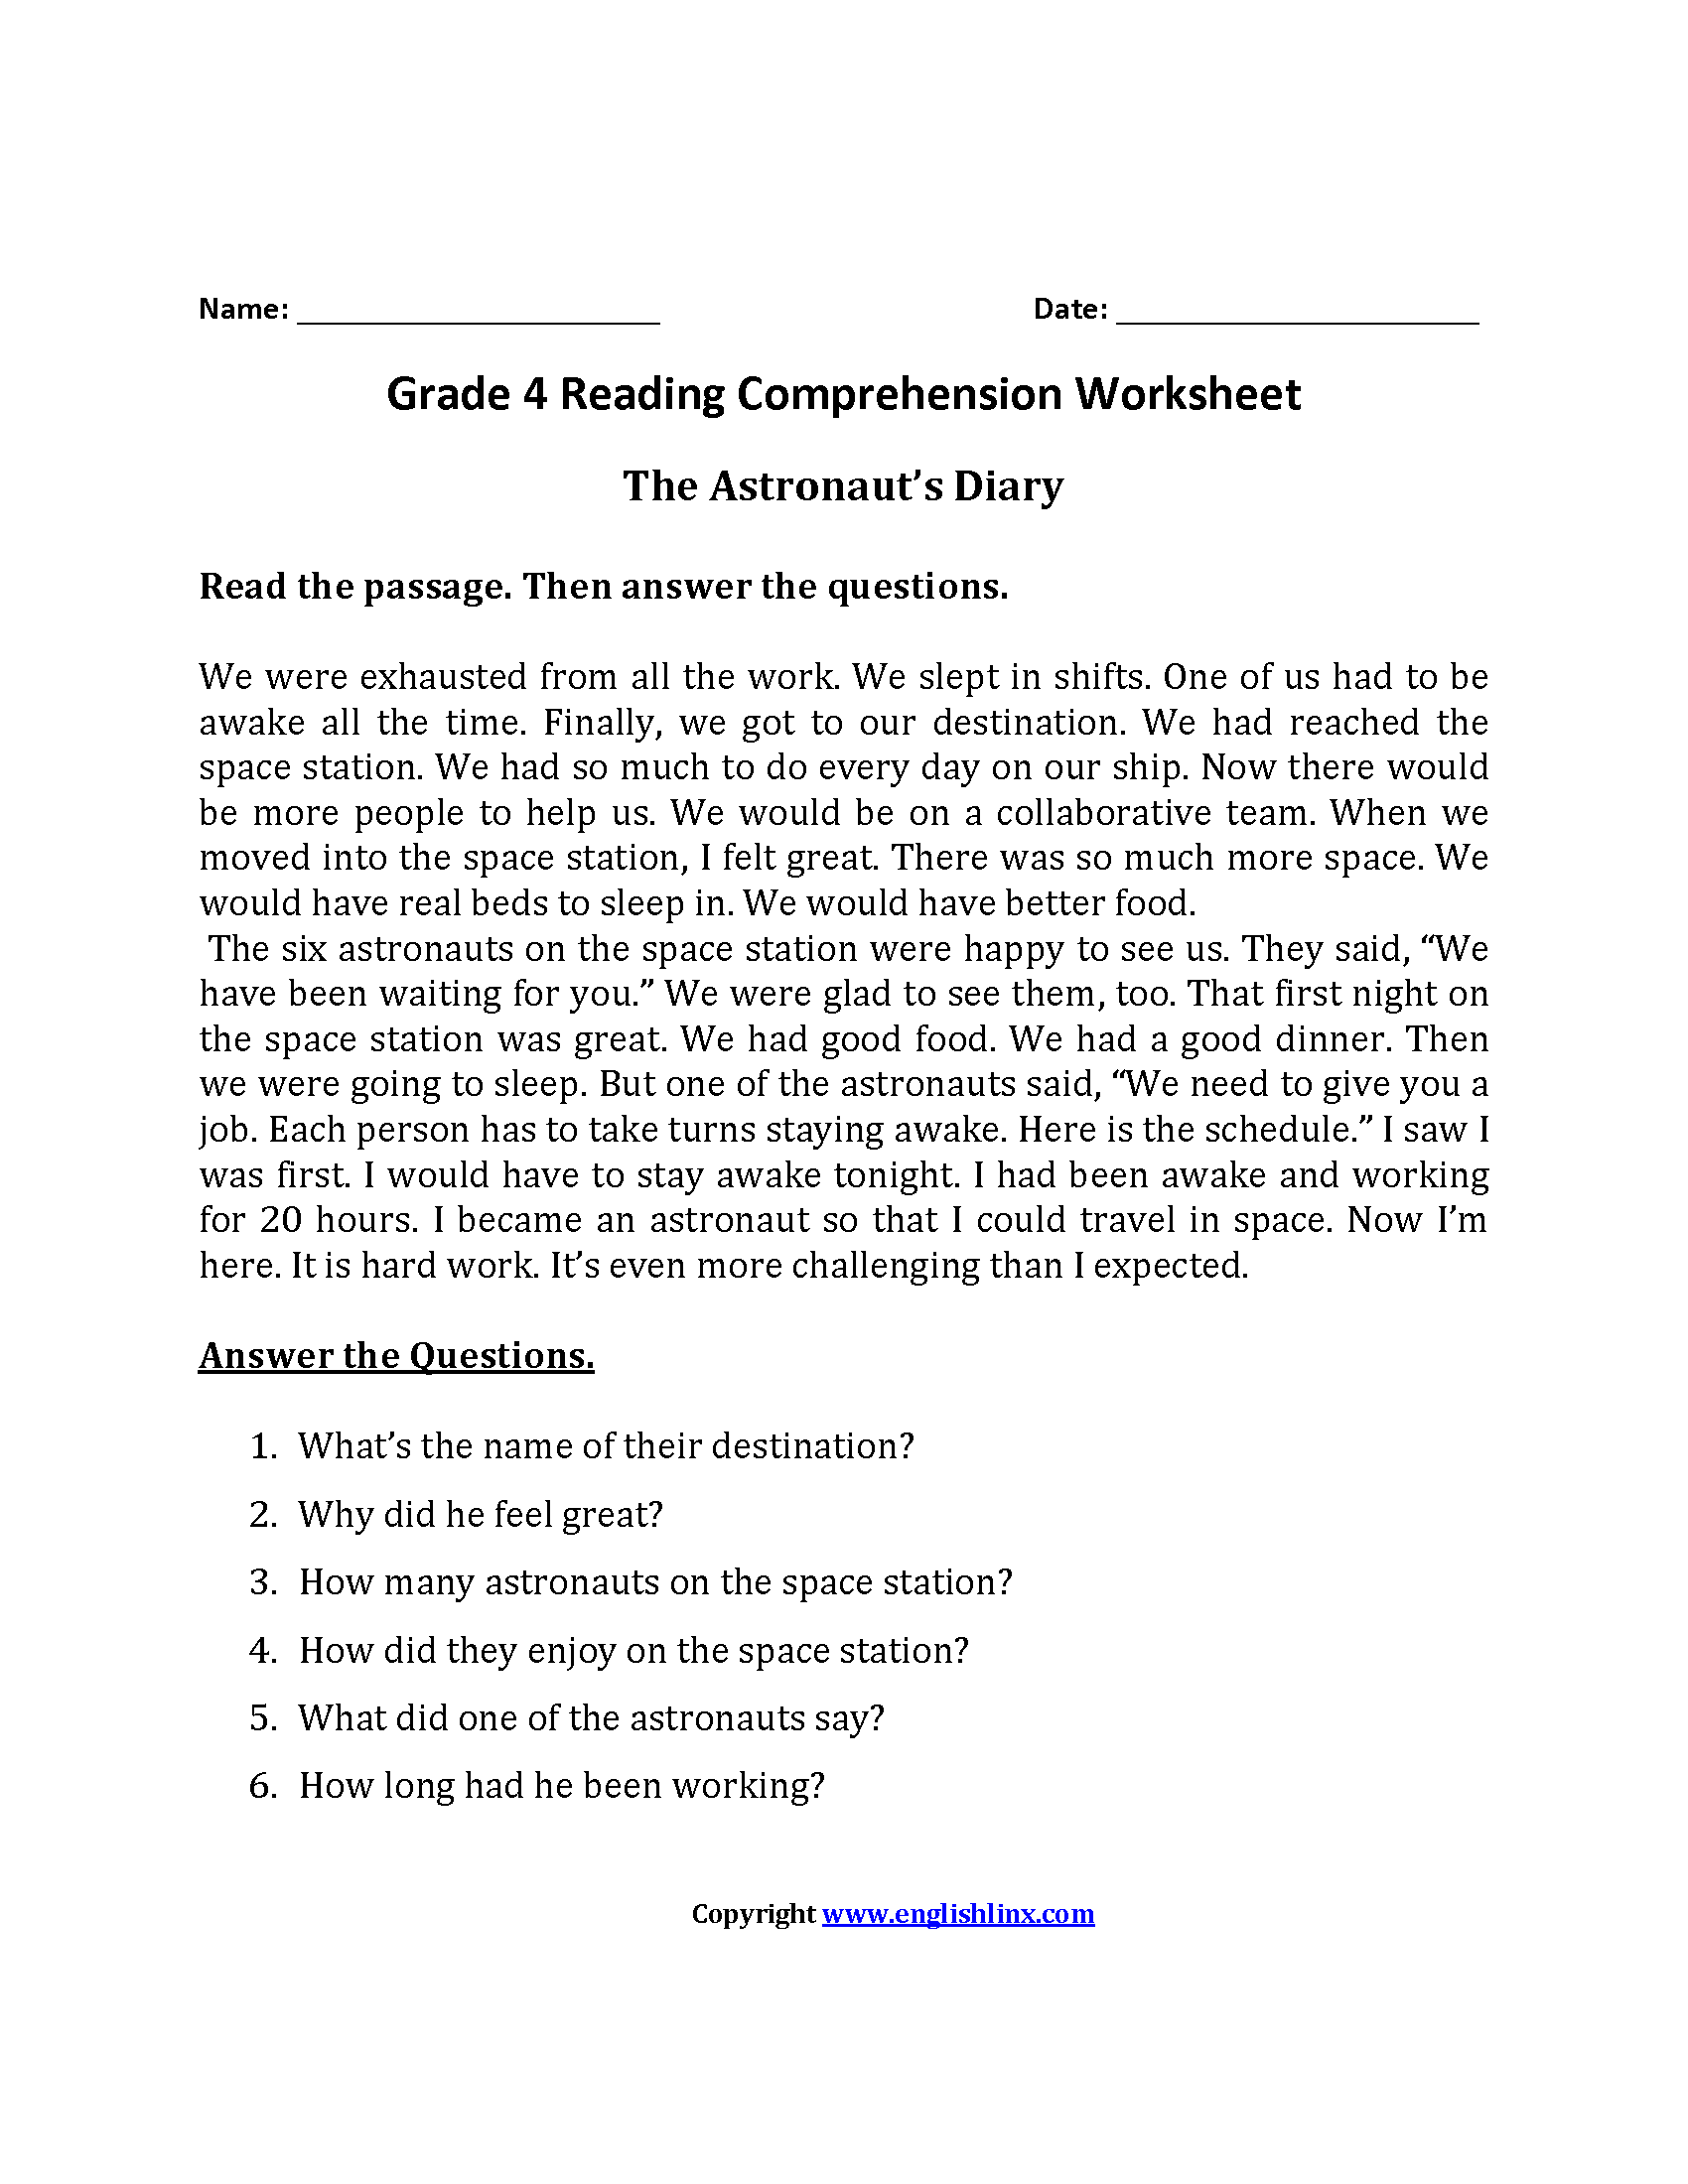 worksheet Common Core Reading Comprehension Worksheets 4th Grade english worksheets reading fourth grade worksheets